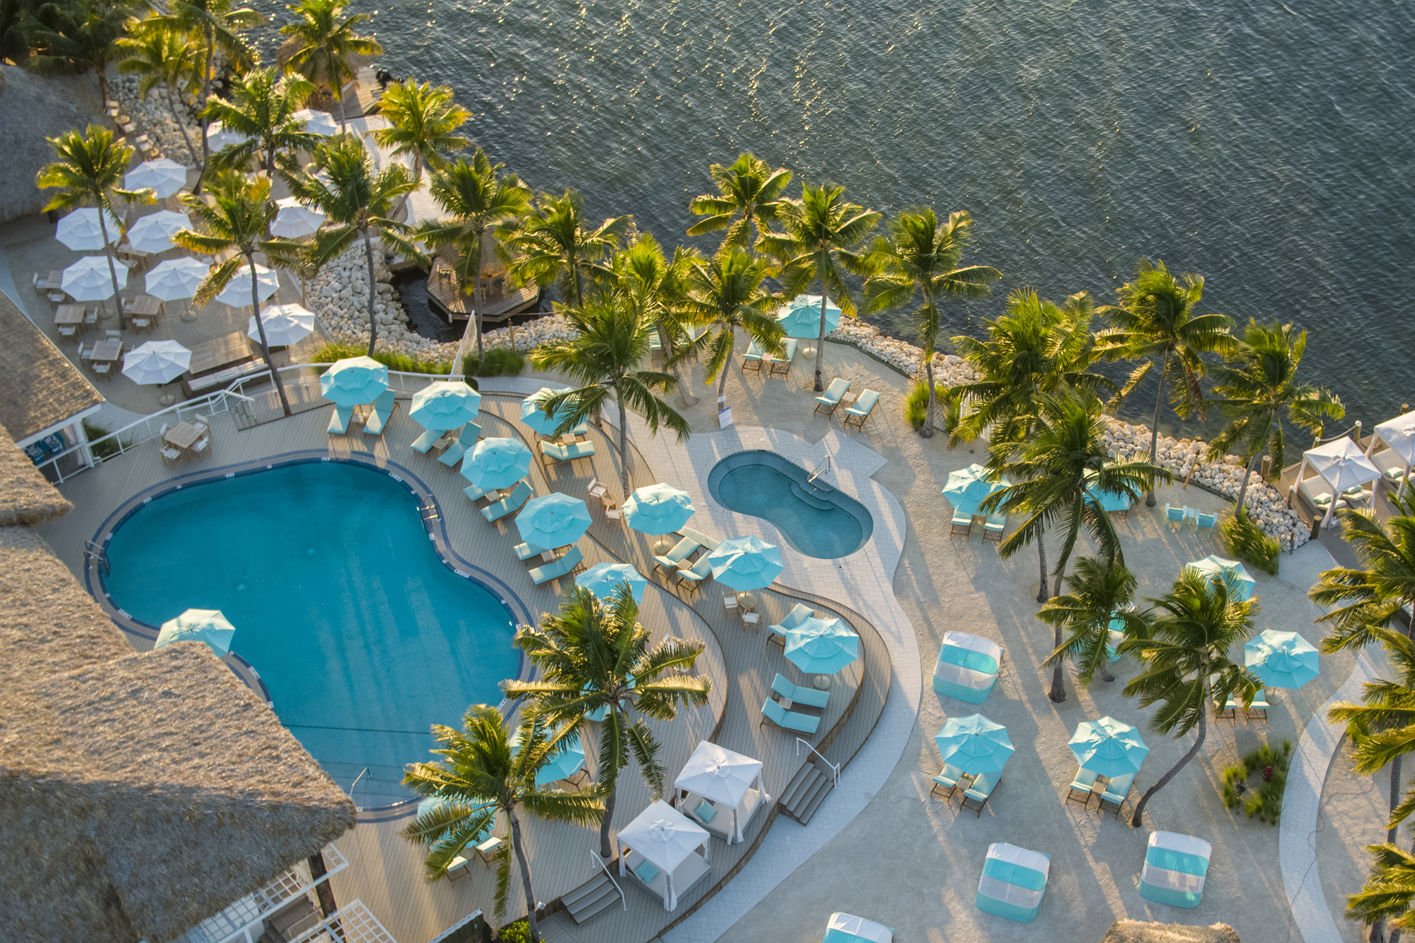 The First-Ever All-Inclusive Resort in the Florida Keys Is Now Open